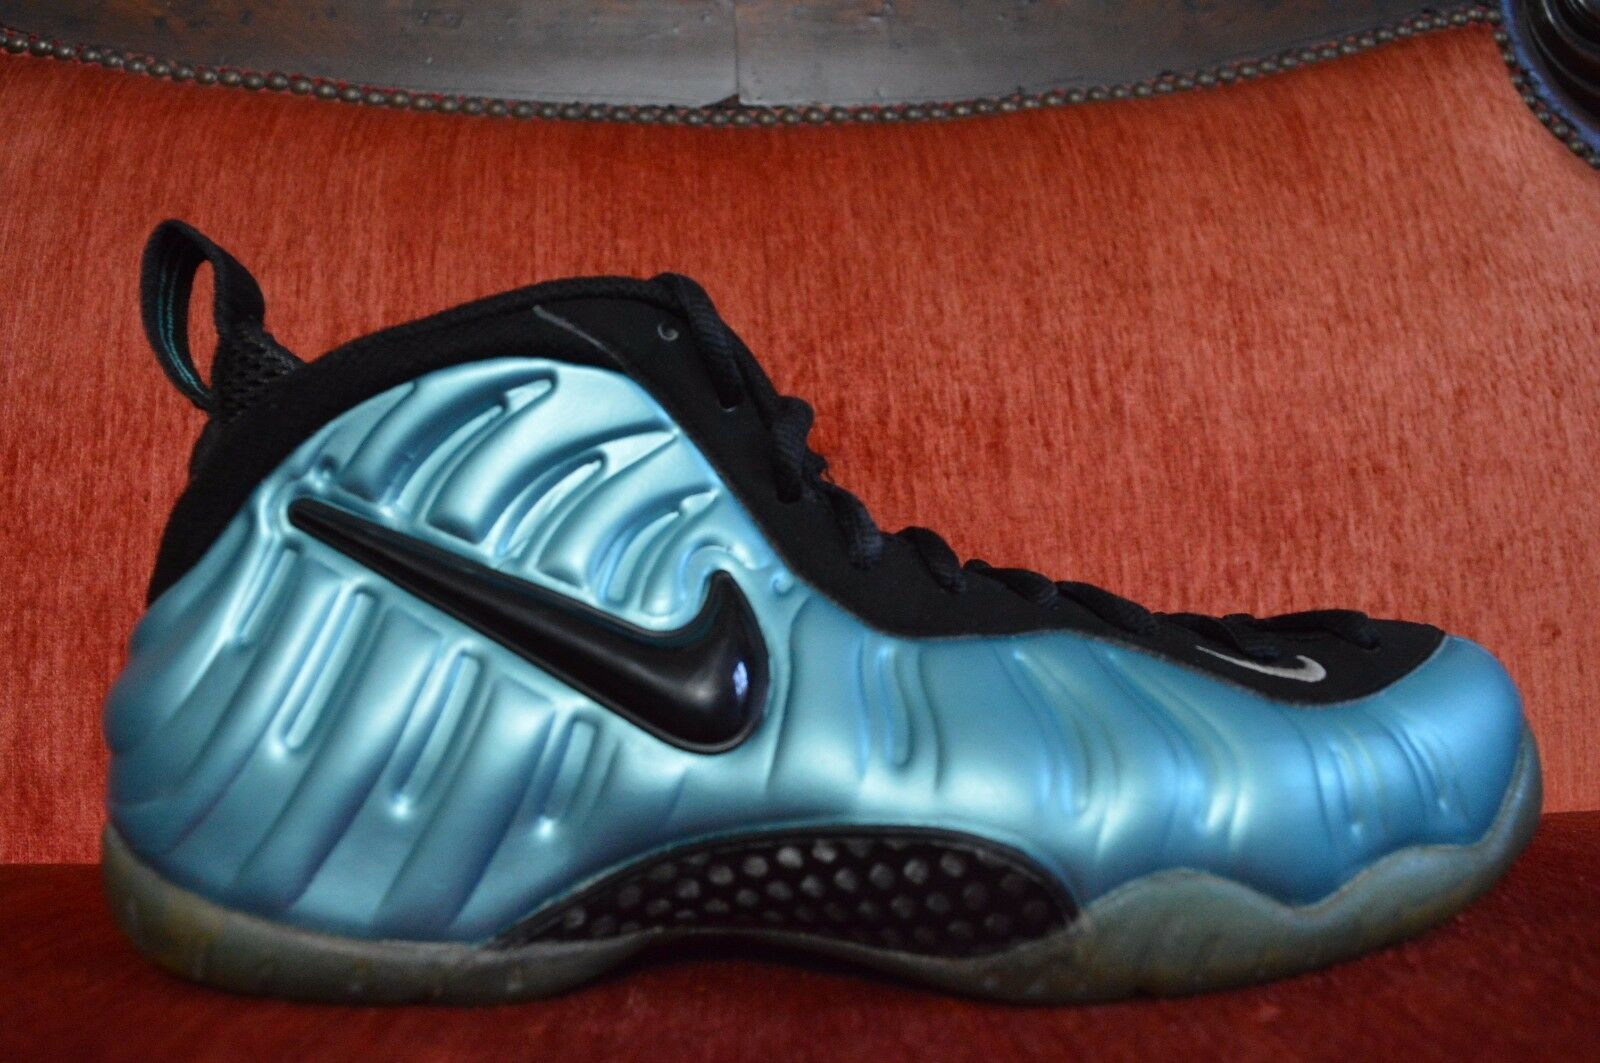 NIKE AIR FOAMPOSITE PRO ELECTRIC BLUE Size 9.5 RETRO 624041-410 8/10 Condition